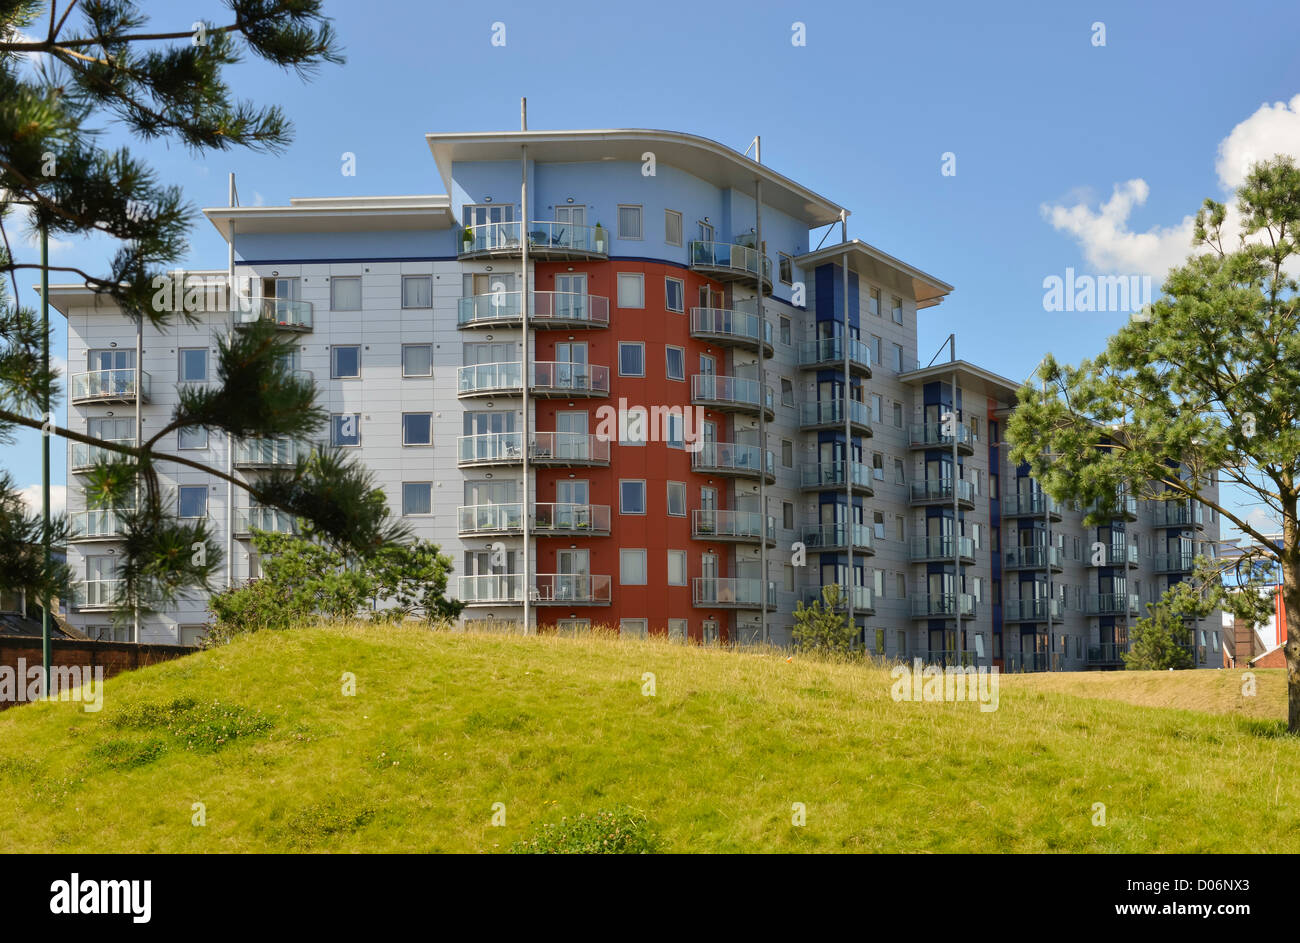 Apartments in Walsall, West Midlands - Stock Image